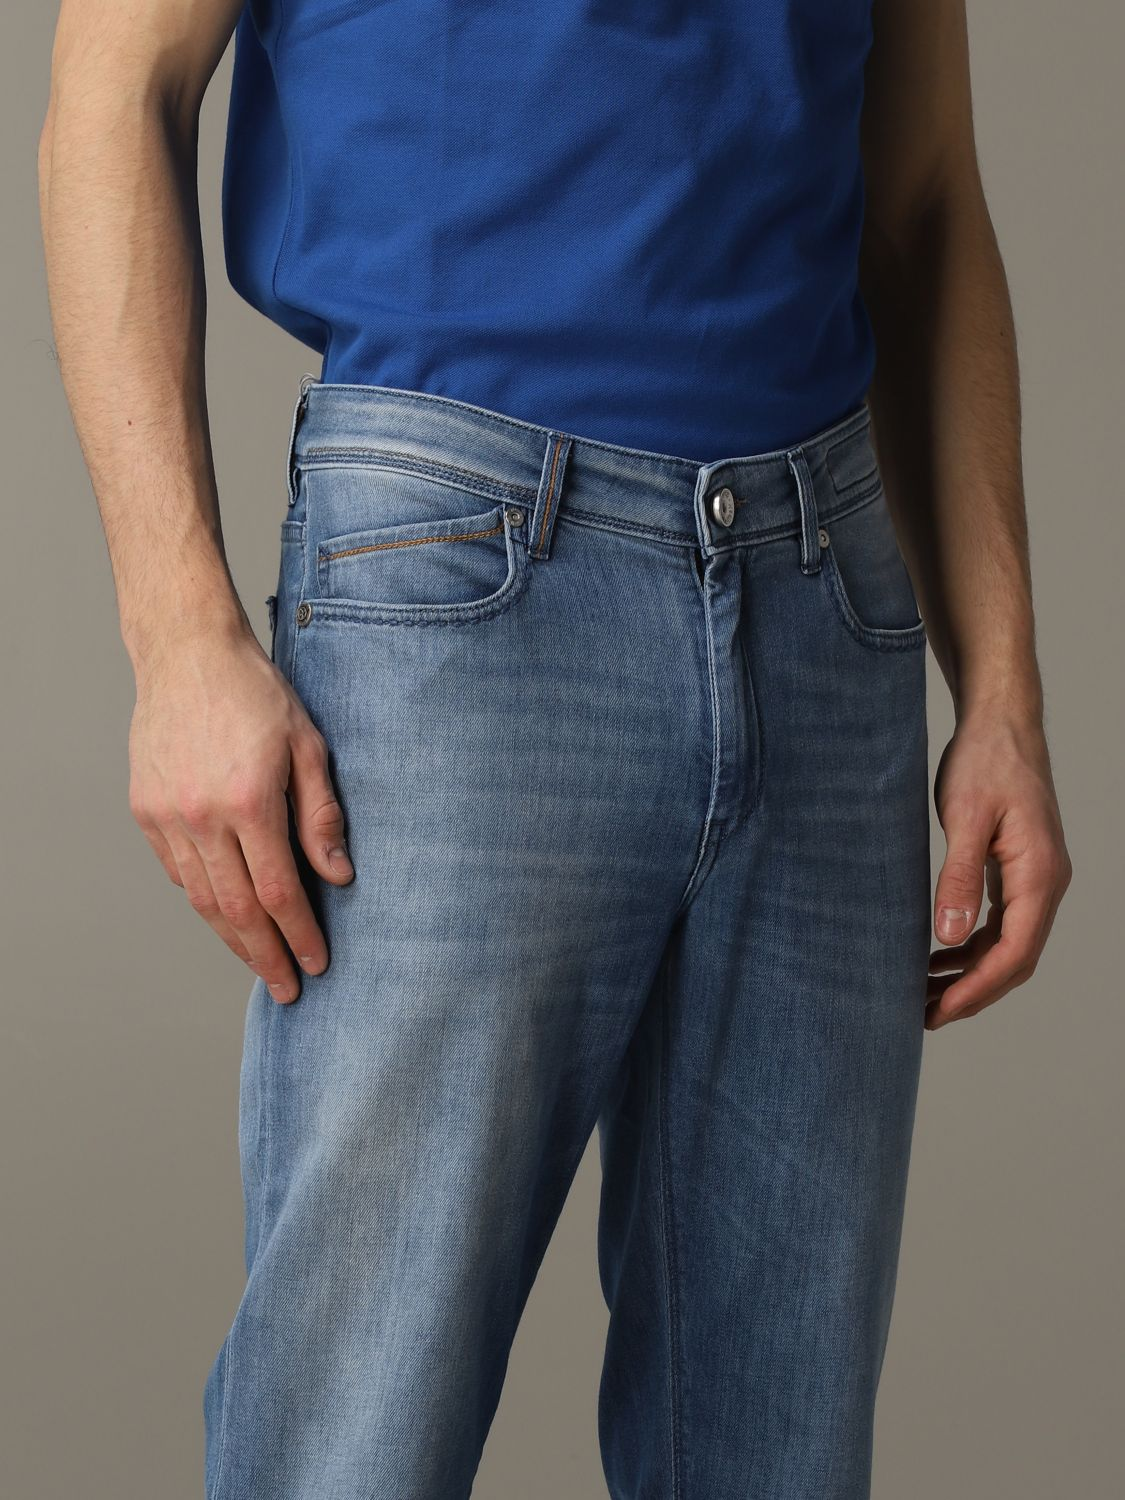 Jeans hombre Re-hash azul oscuro 5